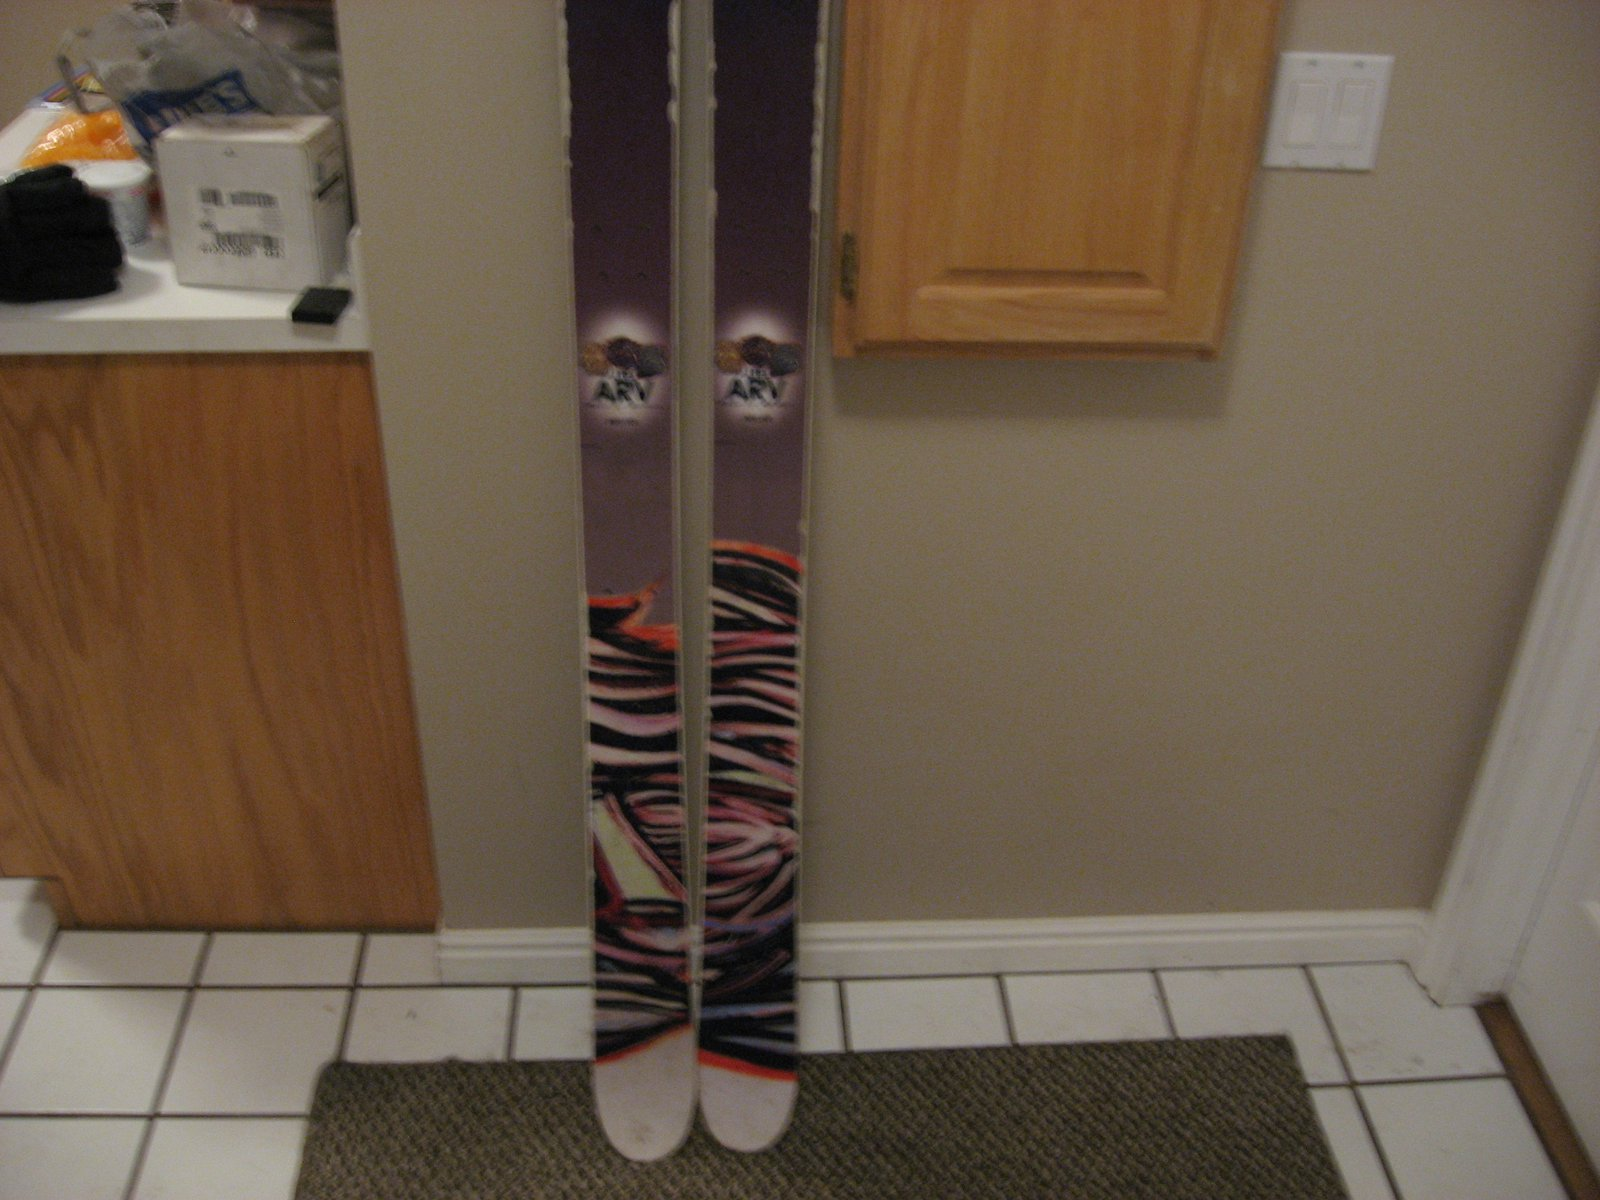 Armada arv skis for sale - 3 of 8